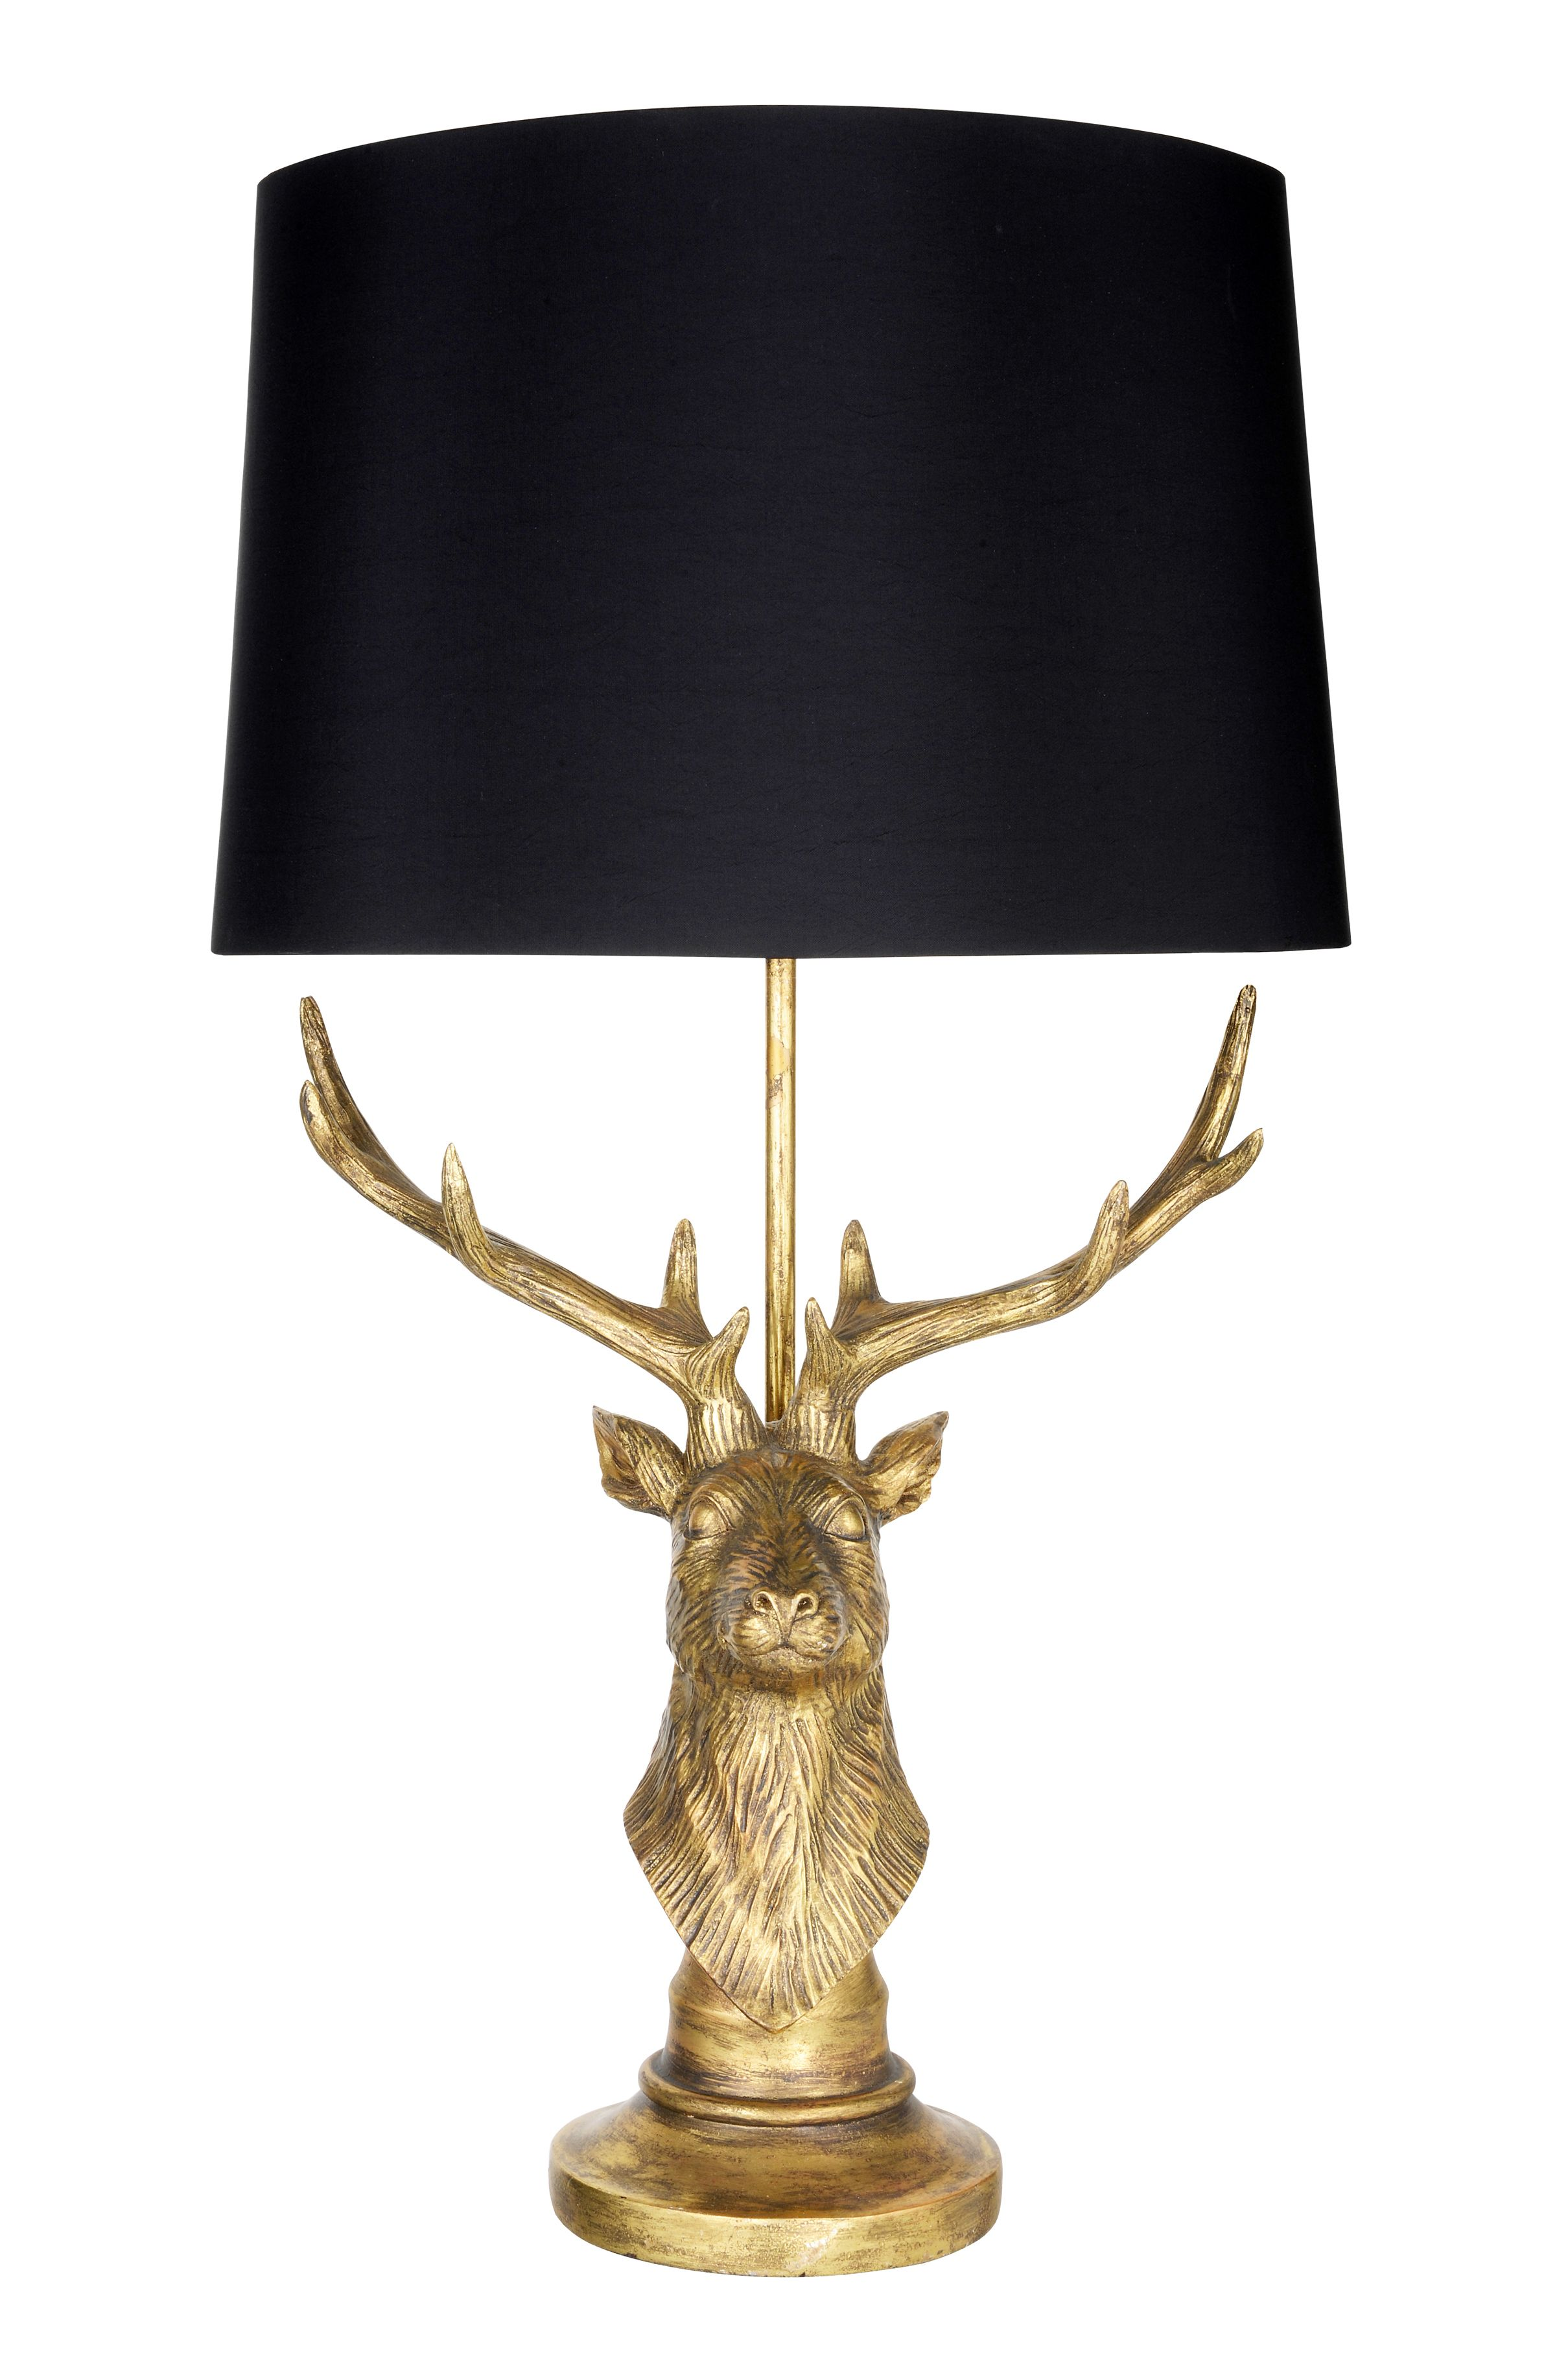 Living by christiane lemieux stag lamp at house of fraser home living by christiane lemieux stag lamp at house of fraser geotapseo Gallery